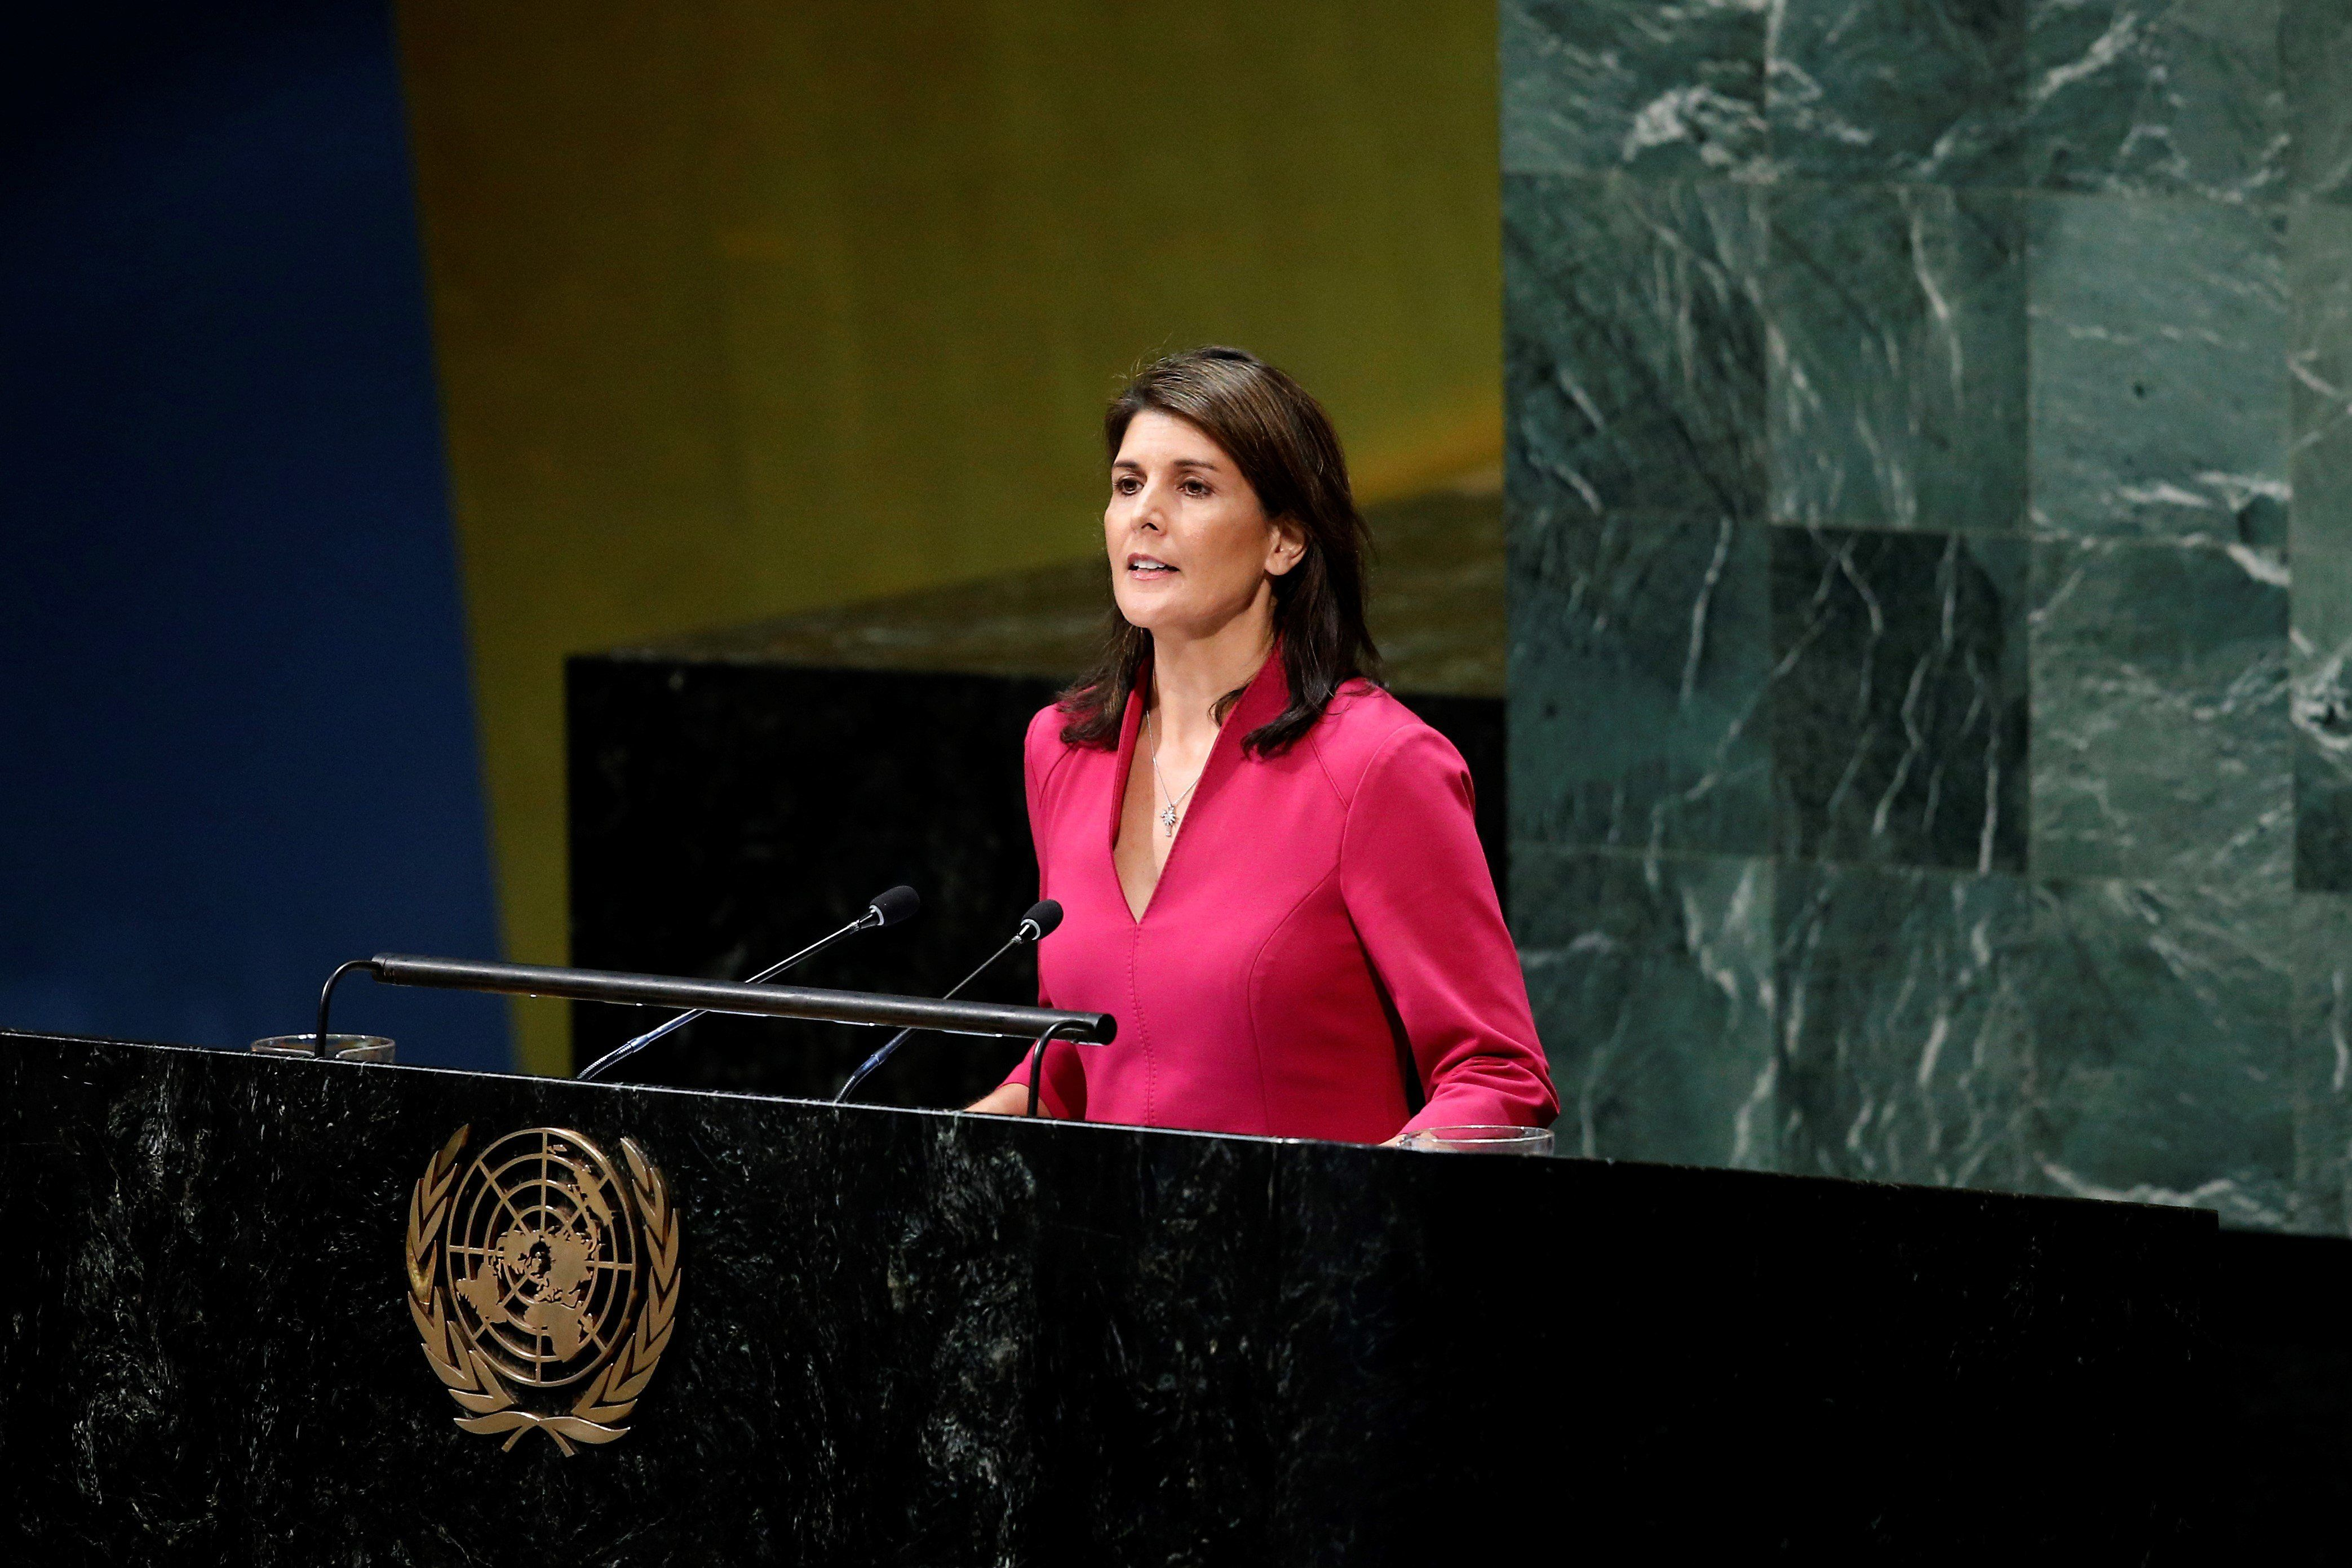 NEW YORK, USA - NOVEMBER 01: U.S. Ambassador to the United Nations Nikki Haley makes a speech during the United Nations General Assembly 30th plenary meeting on necessity of ending the economic, commercial and financial embargo imposed by the United States of America against Cuba at the United Nations Headquarters in New York, United States on November 01, 2018. (Photo by Atilgan Ozdil/Anadolu Agency/Getty Images)